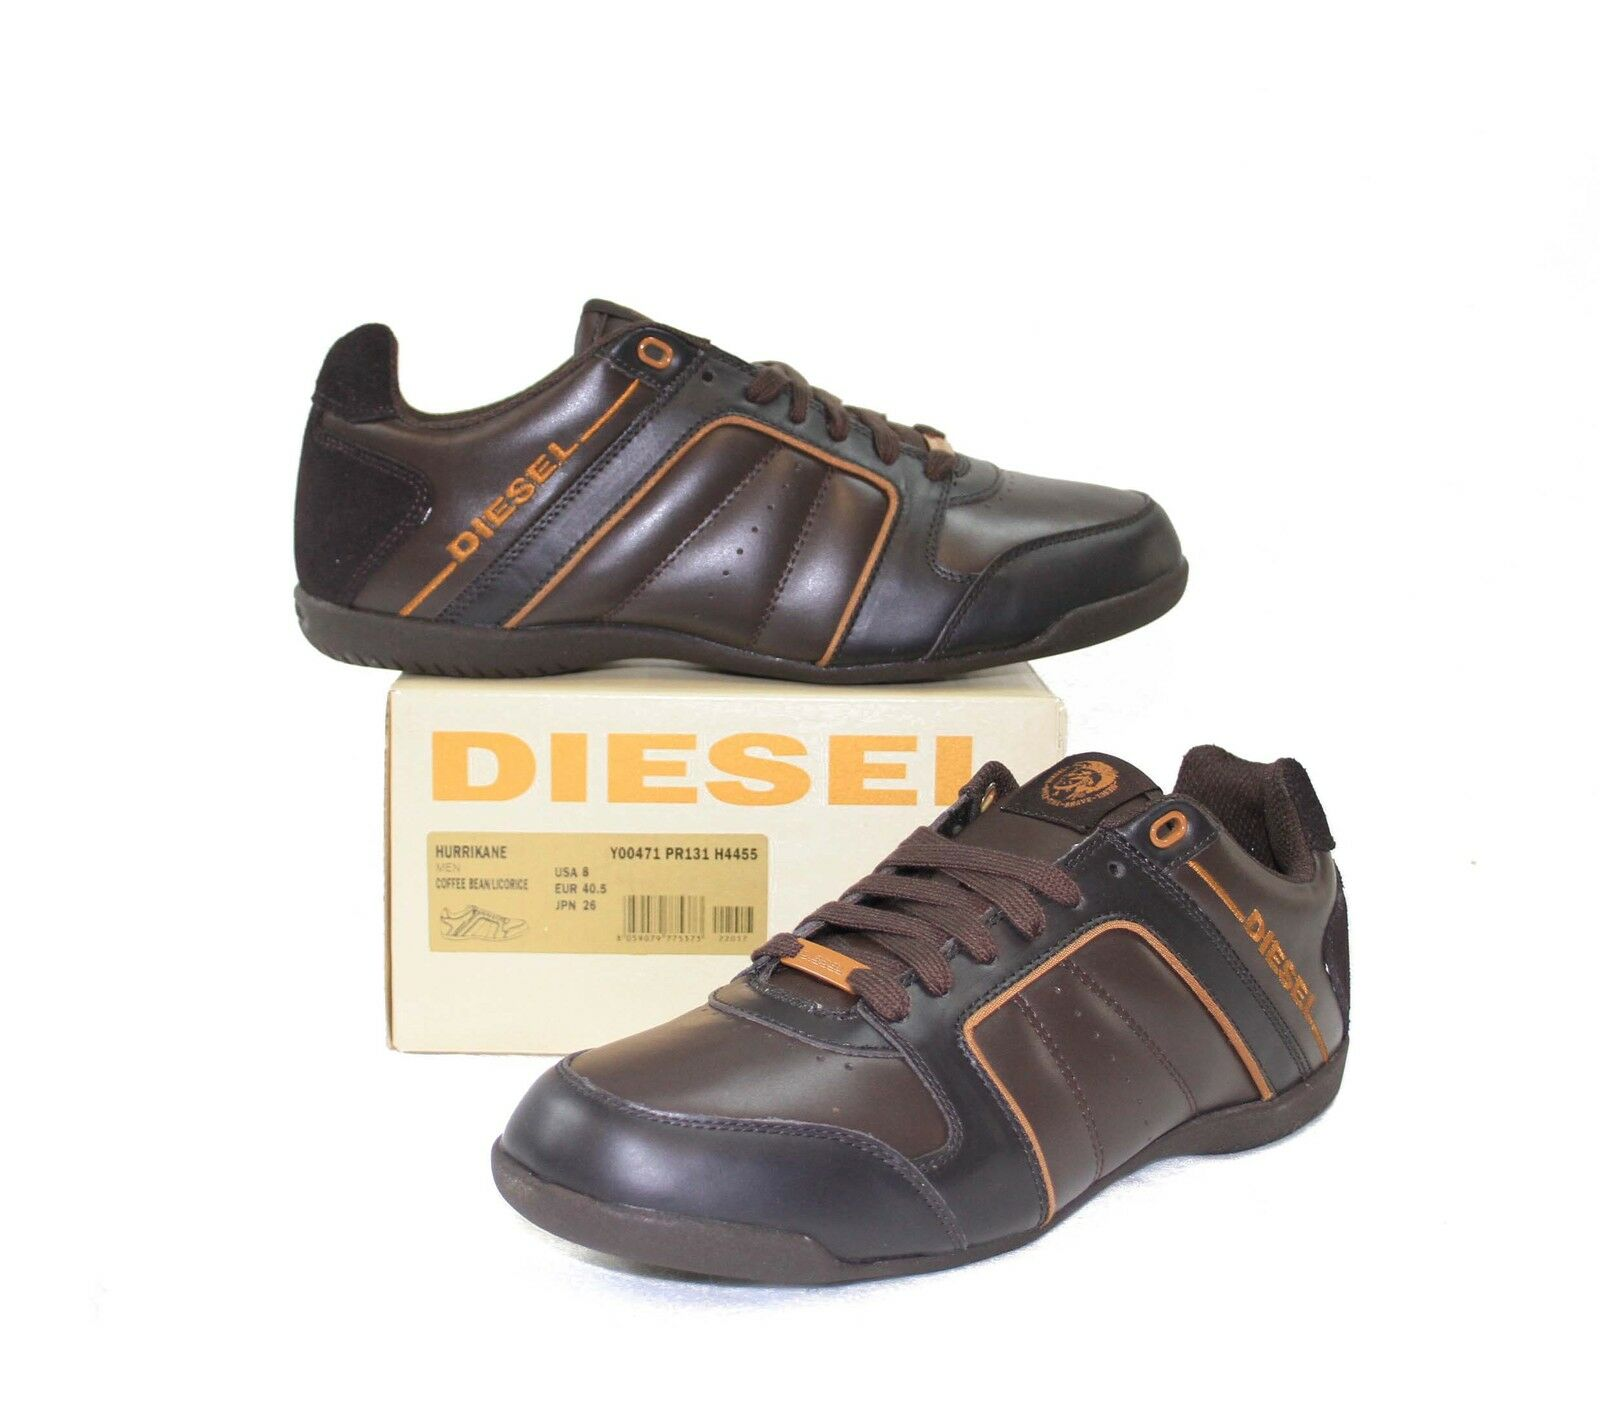 NEW DIESEL  Brand Men's Hurrikane Brown Yellow Leather Fashion shoes Sneakers